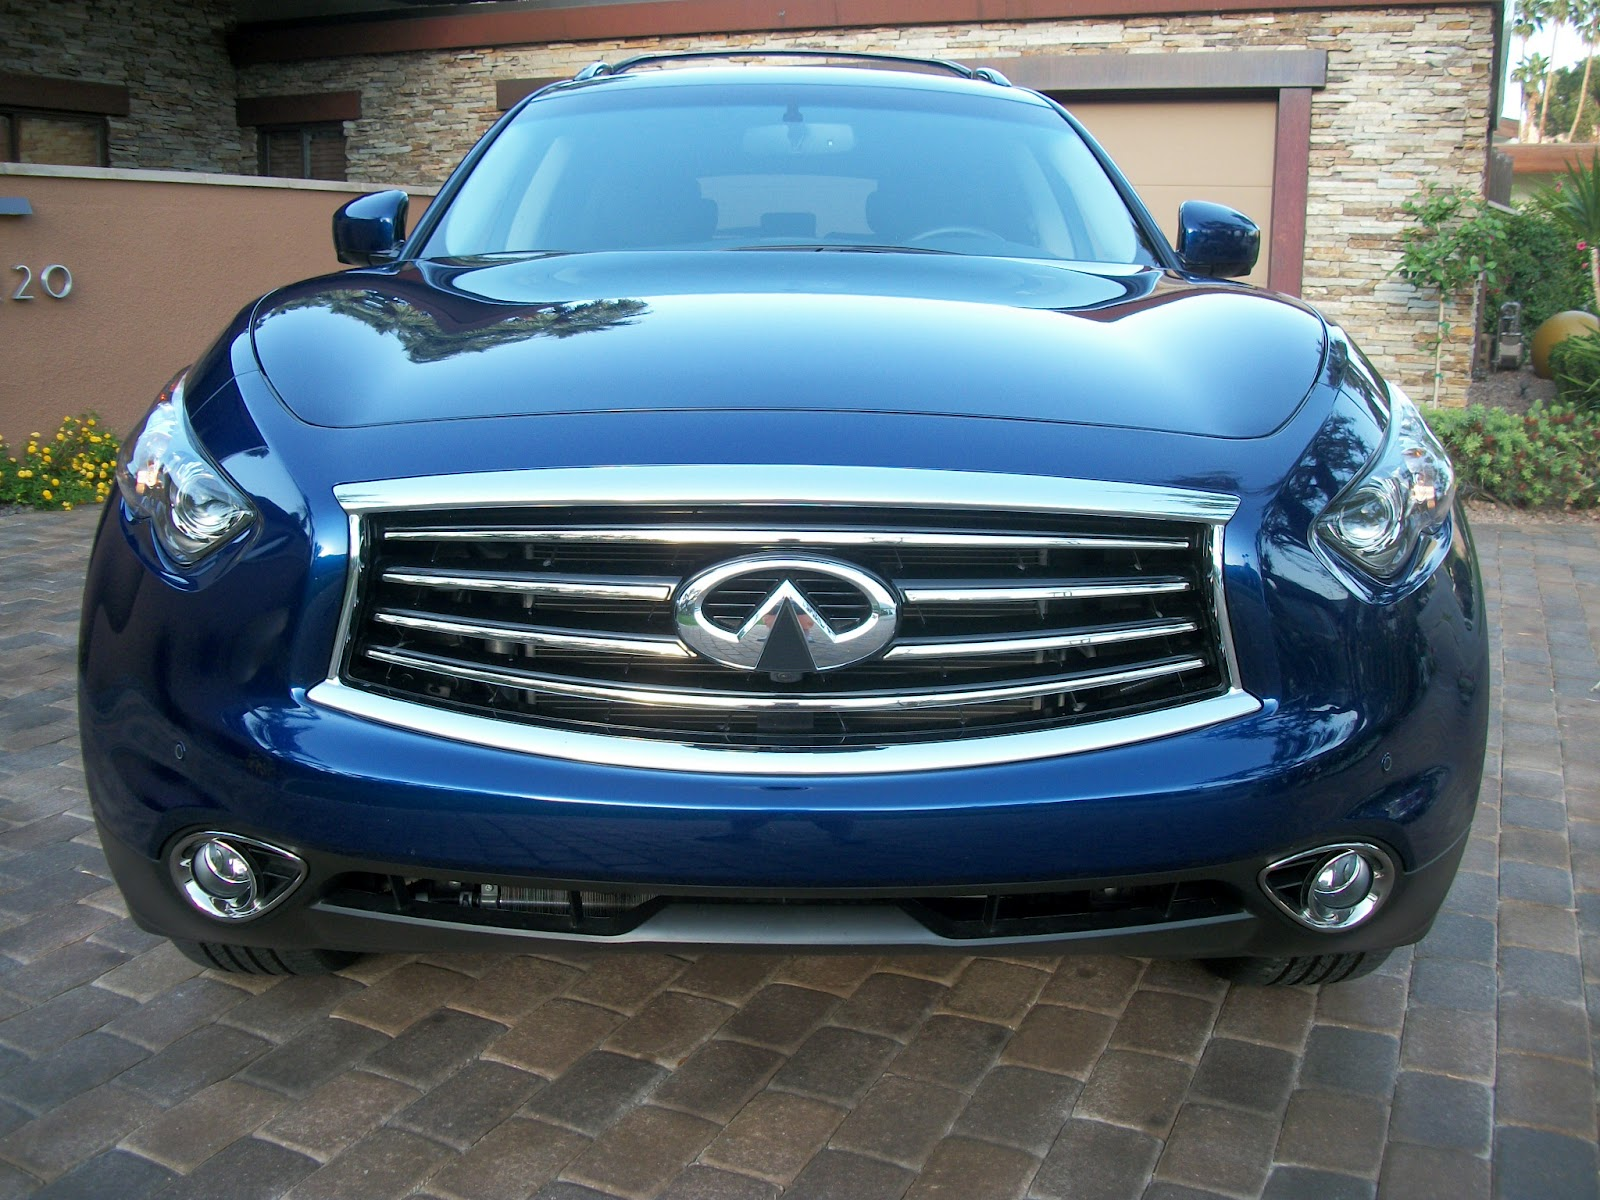 Palm springs automobilist behind the wheel 2012 infiniti fx35 hard to believe its been almost ten years since the fx series made its debut as a 2003 model along with the porsche cayenne the fx helped usher in the vanachro Images